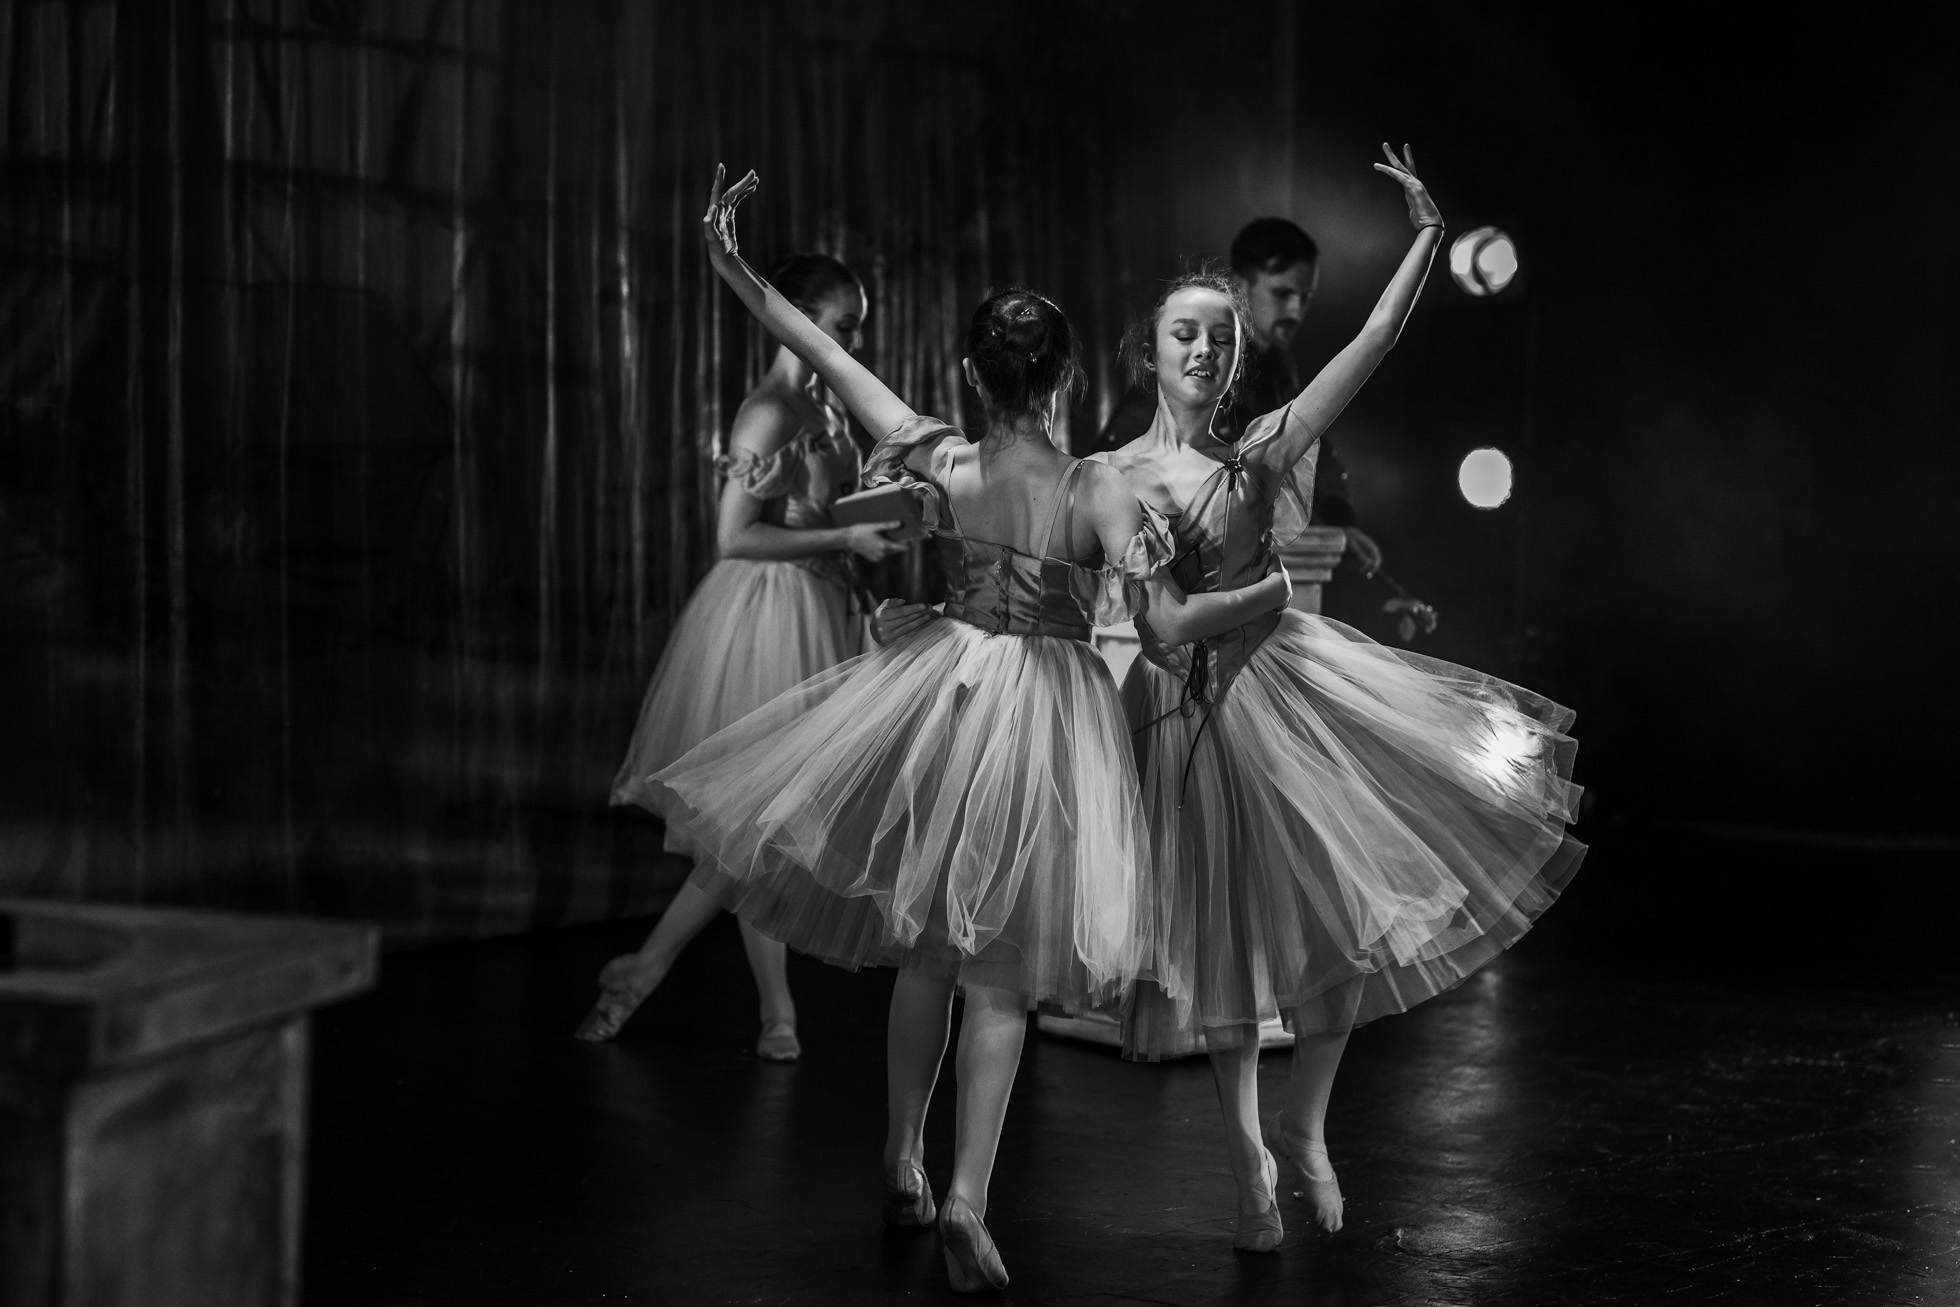 If you have the chance to get backstage at your child's dance show or play, it's the perfect opportunity to take your camera along and capture some memories from the behind the scenes.